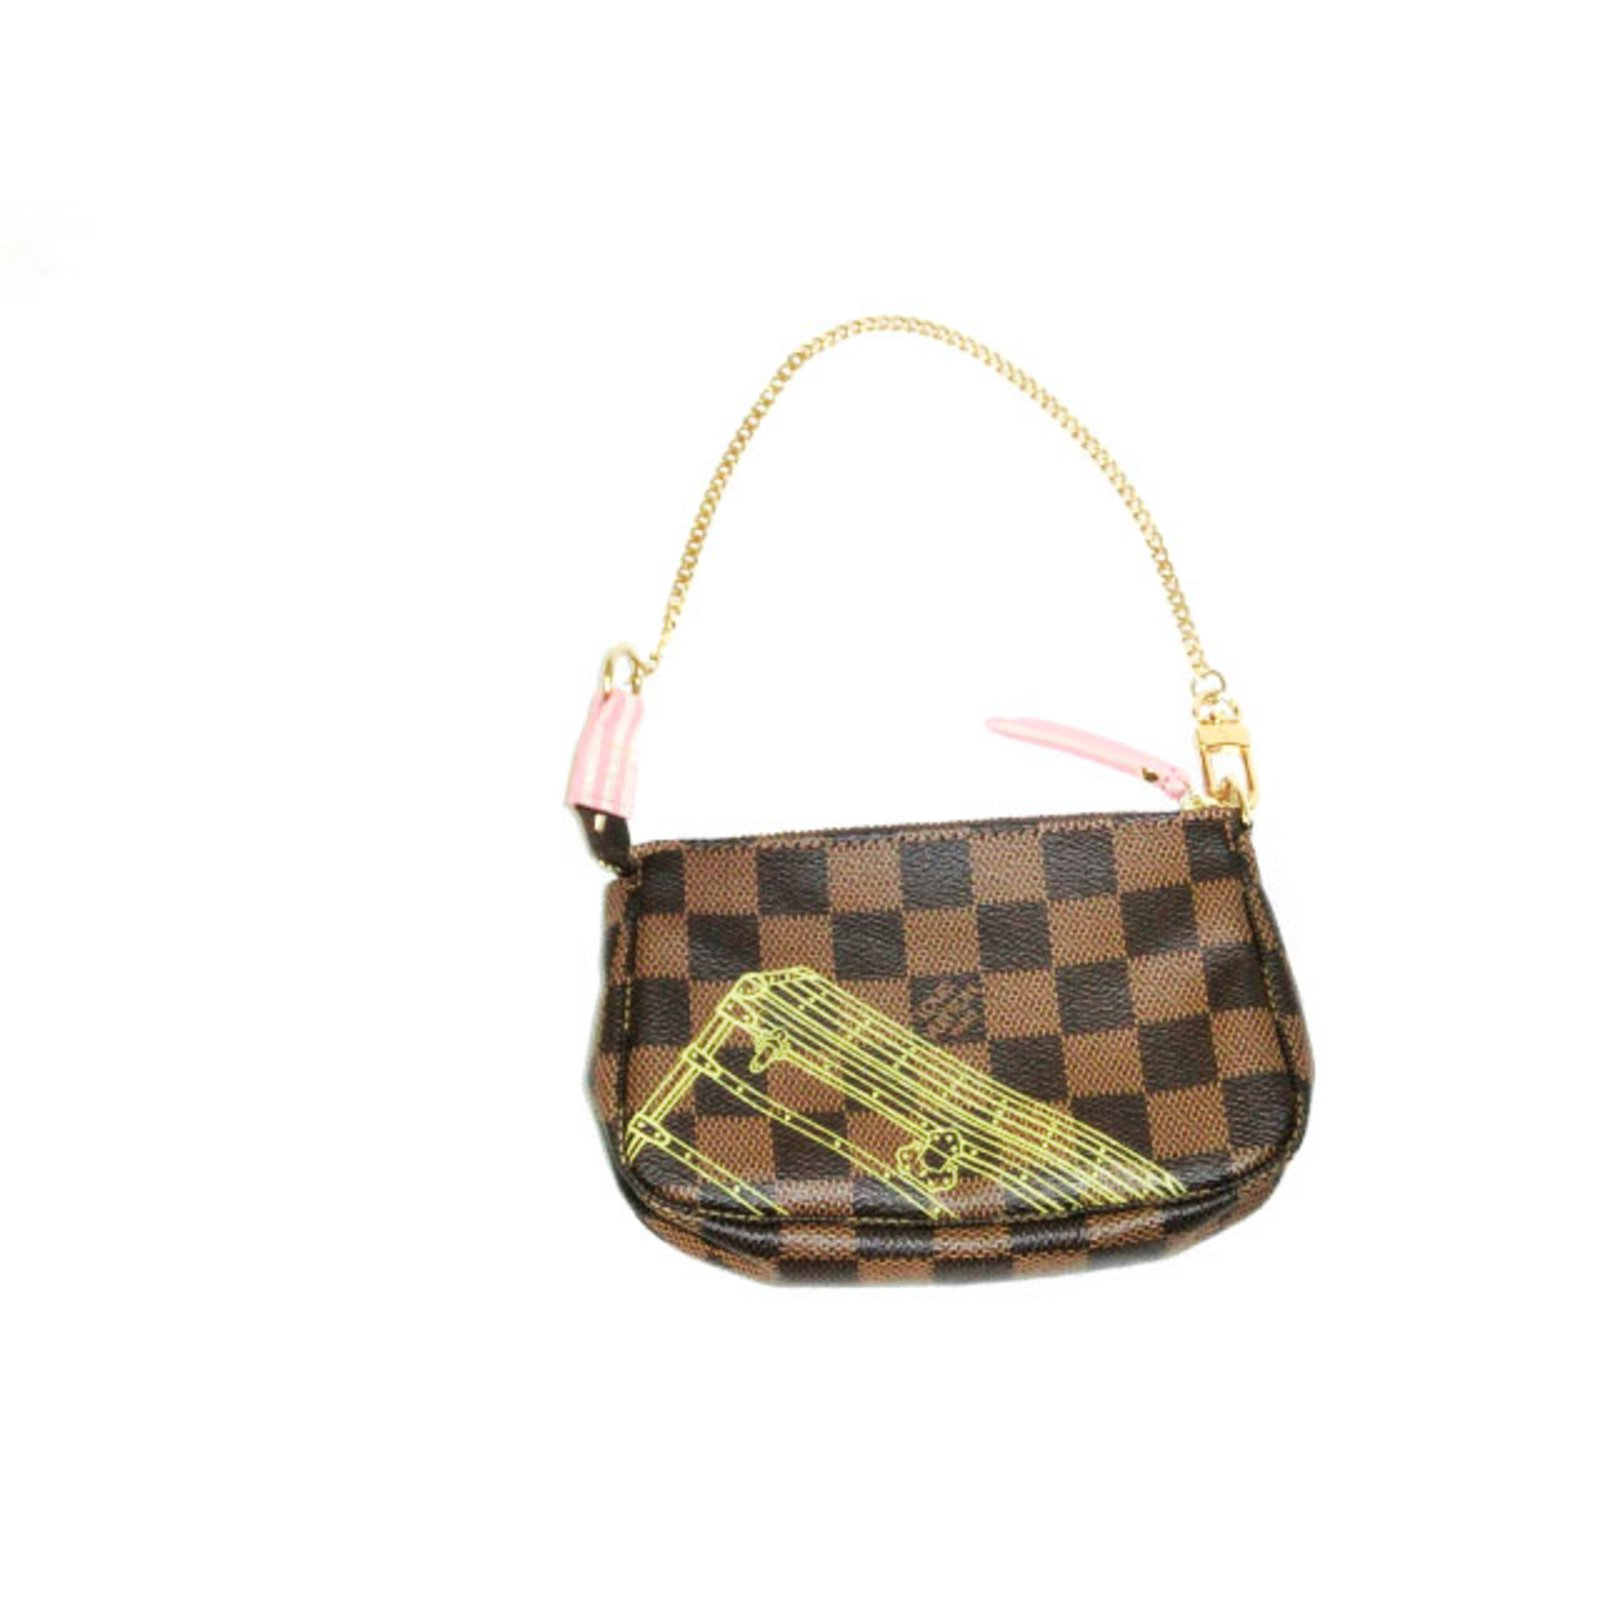 358575648d1 Louis Vuitton, Louis Vuitton Mini Pochette Accessoires Christmas Animation  2014 Limited Edition